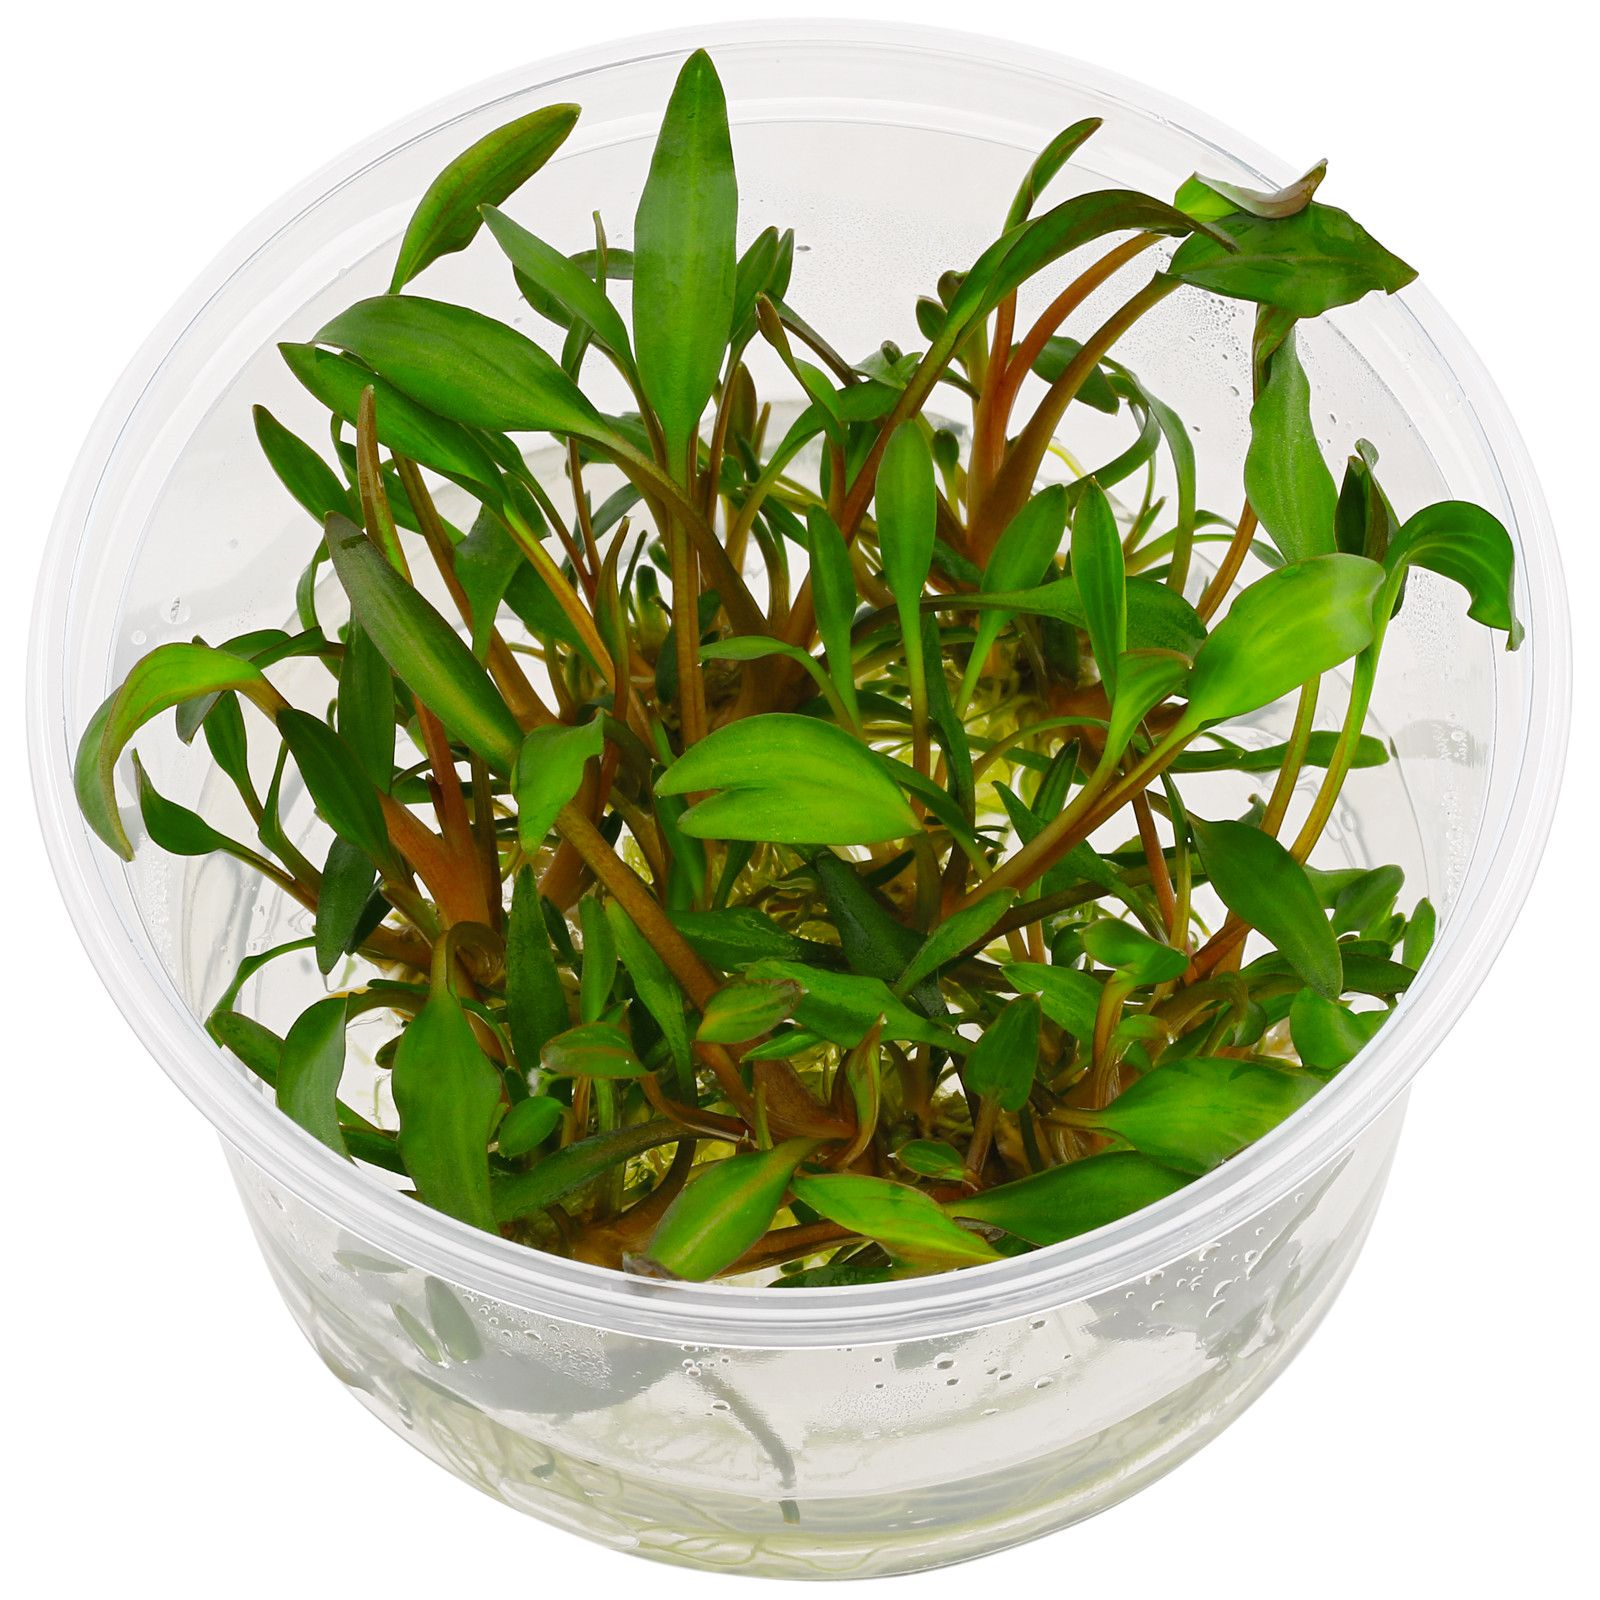 Cryptocoryne walkeri 'Hobbit' - Plant-It!